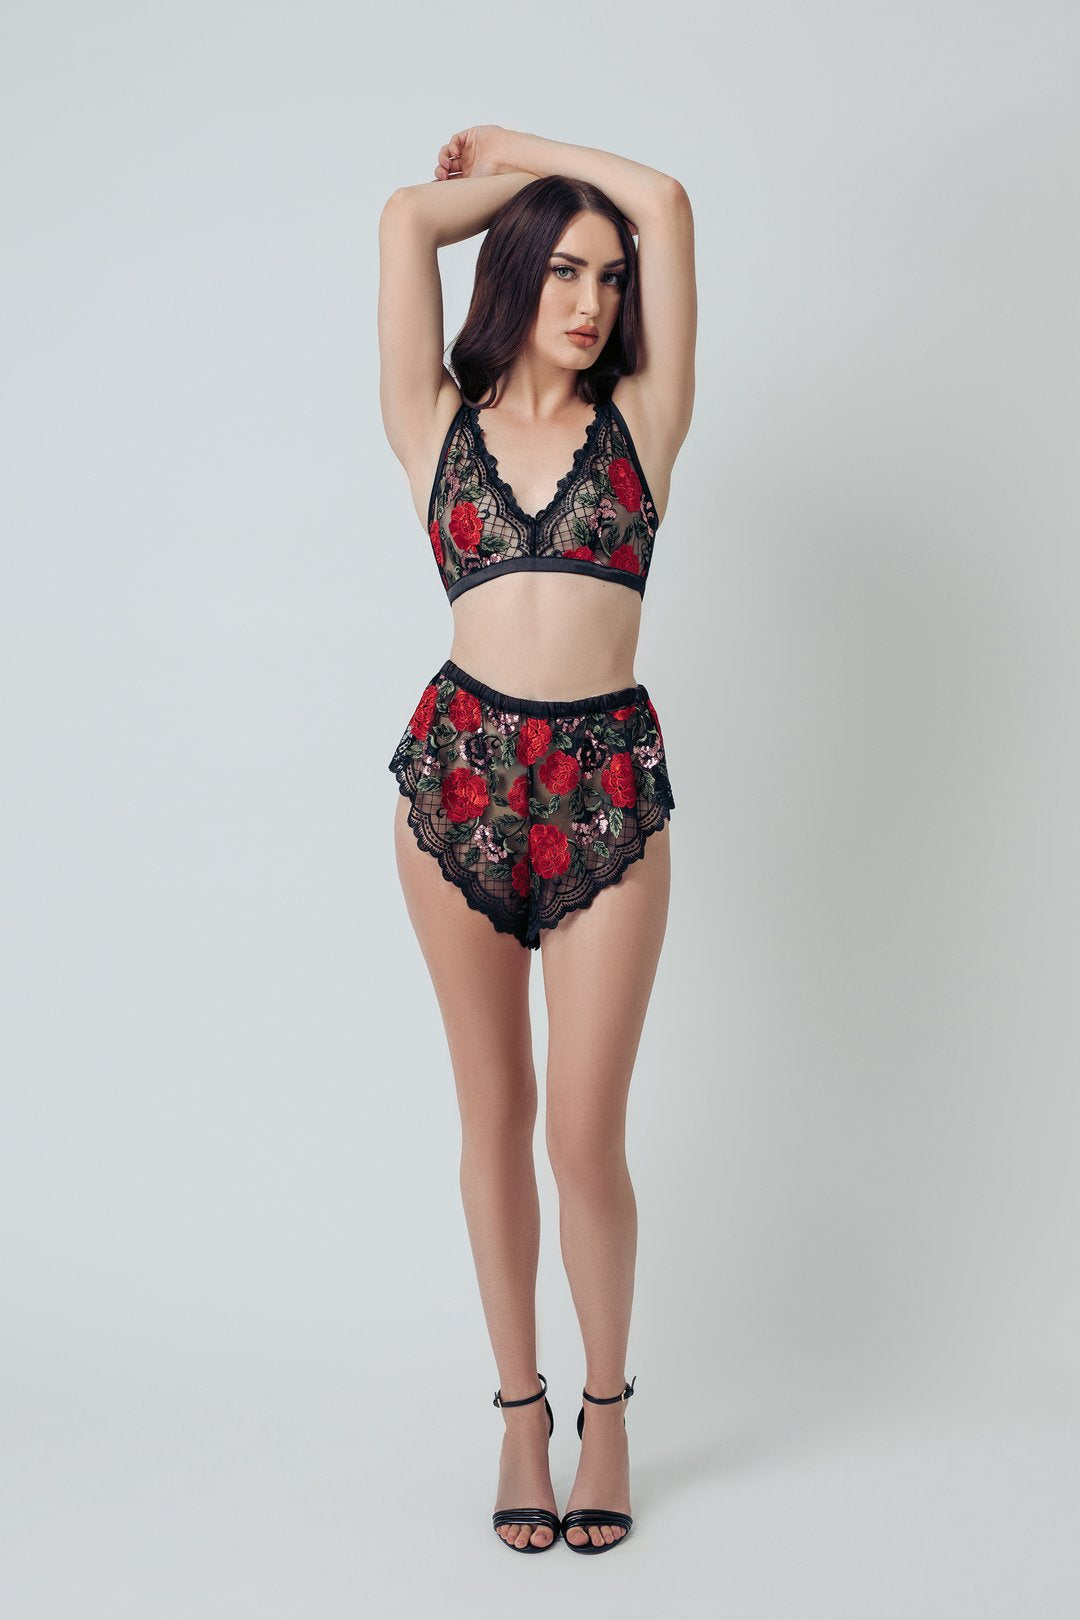 Wild Roses Embroidered Bralette - sizes S - XXXL